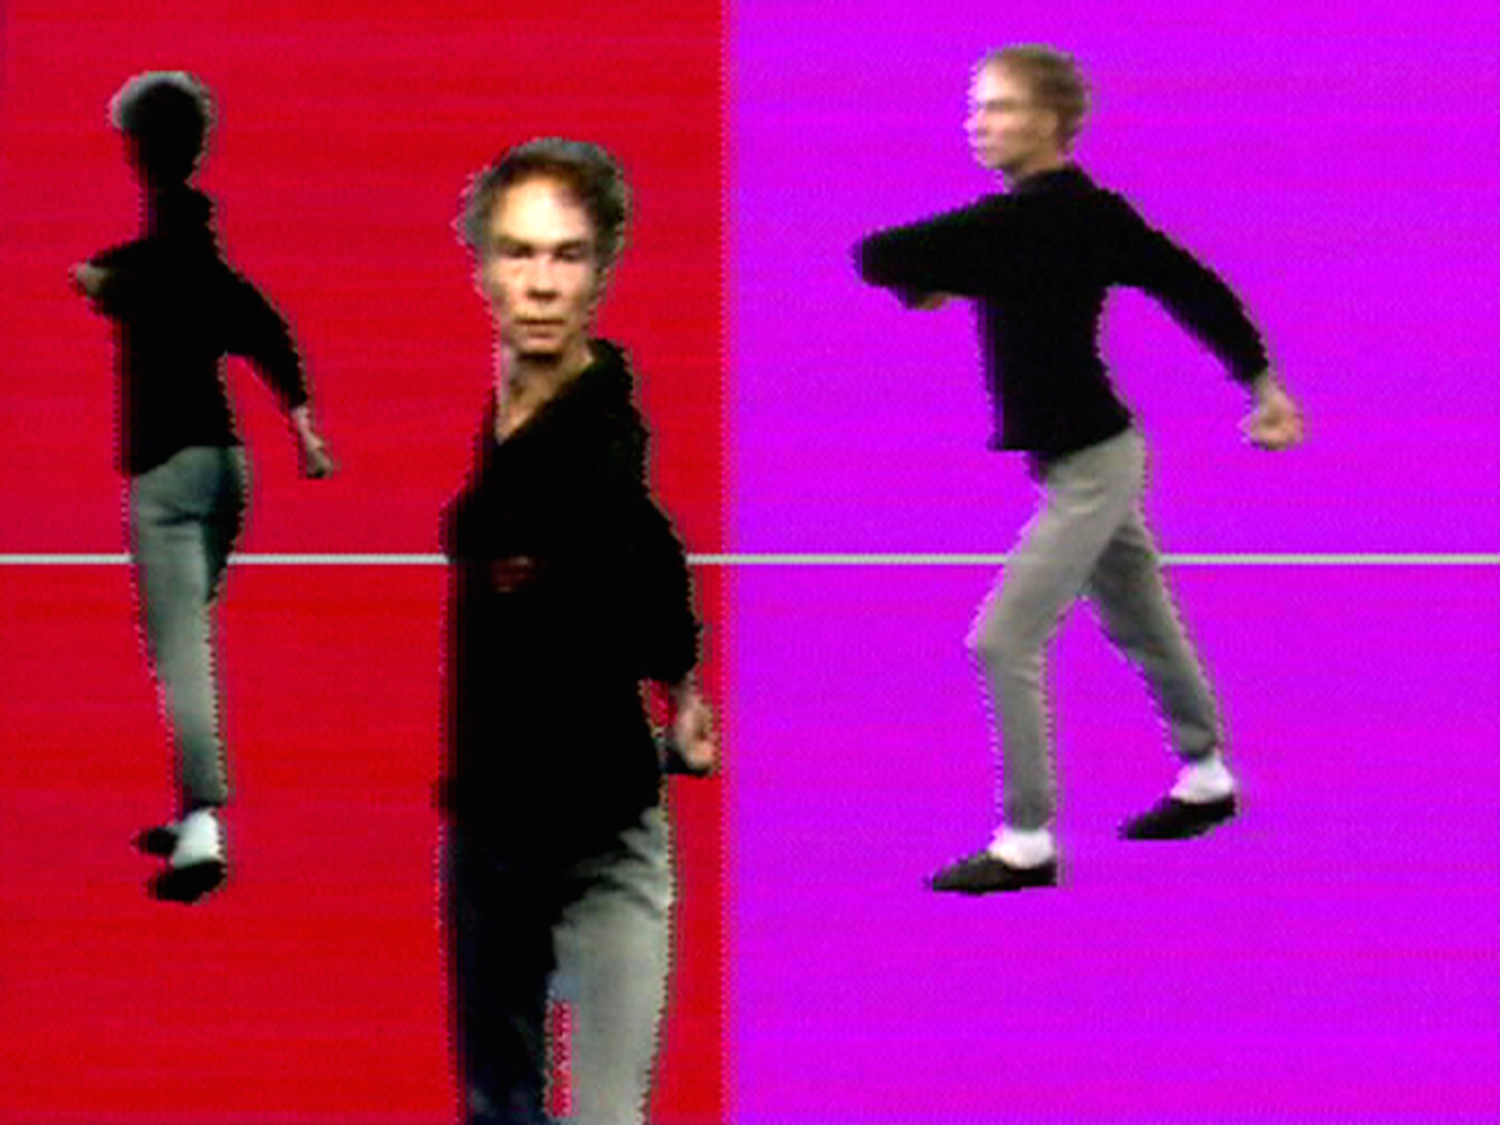 Nam June Paik and Shigeko Kubota, Merce by Merce by Paik Part Two: Merce and Marcel Part of Merce by Merce by Nam June Paik. In collaboration with Charles Atlas, Merce Cunningham, and Shigeko Kubota. Courtesy of Electronic Arts Intermix (EAI), New York and the Estate of Nam June Paik